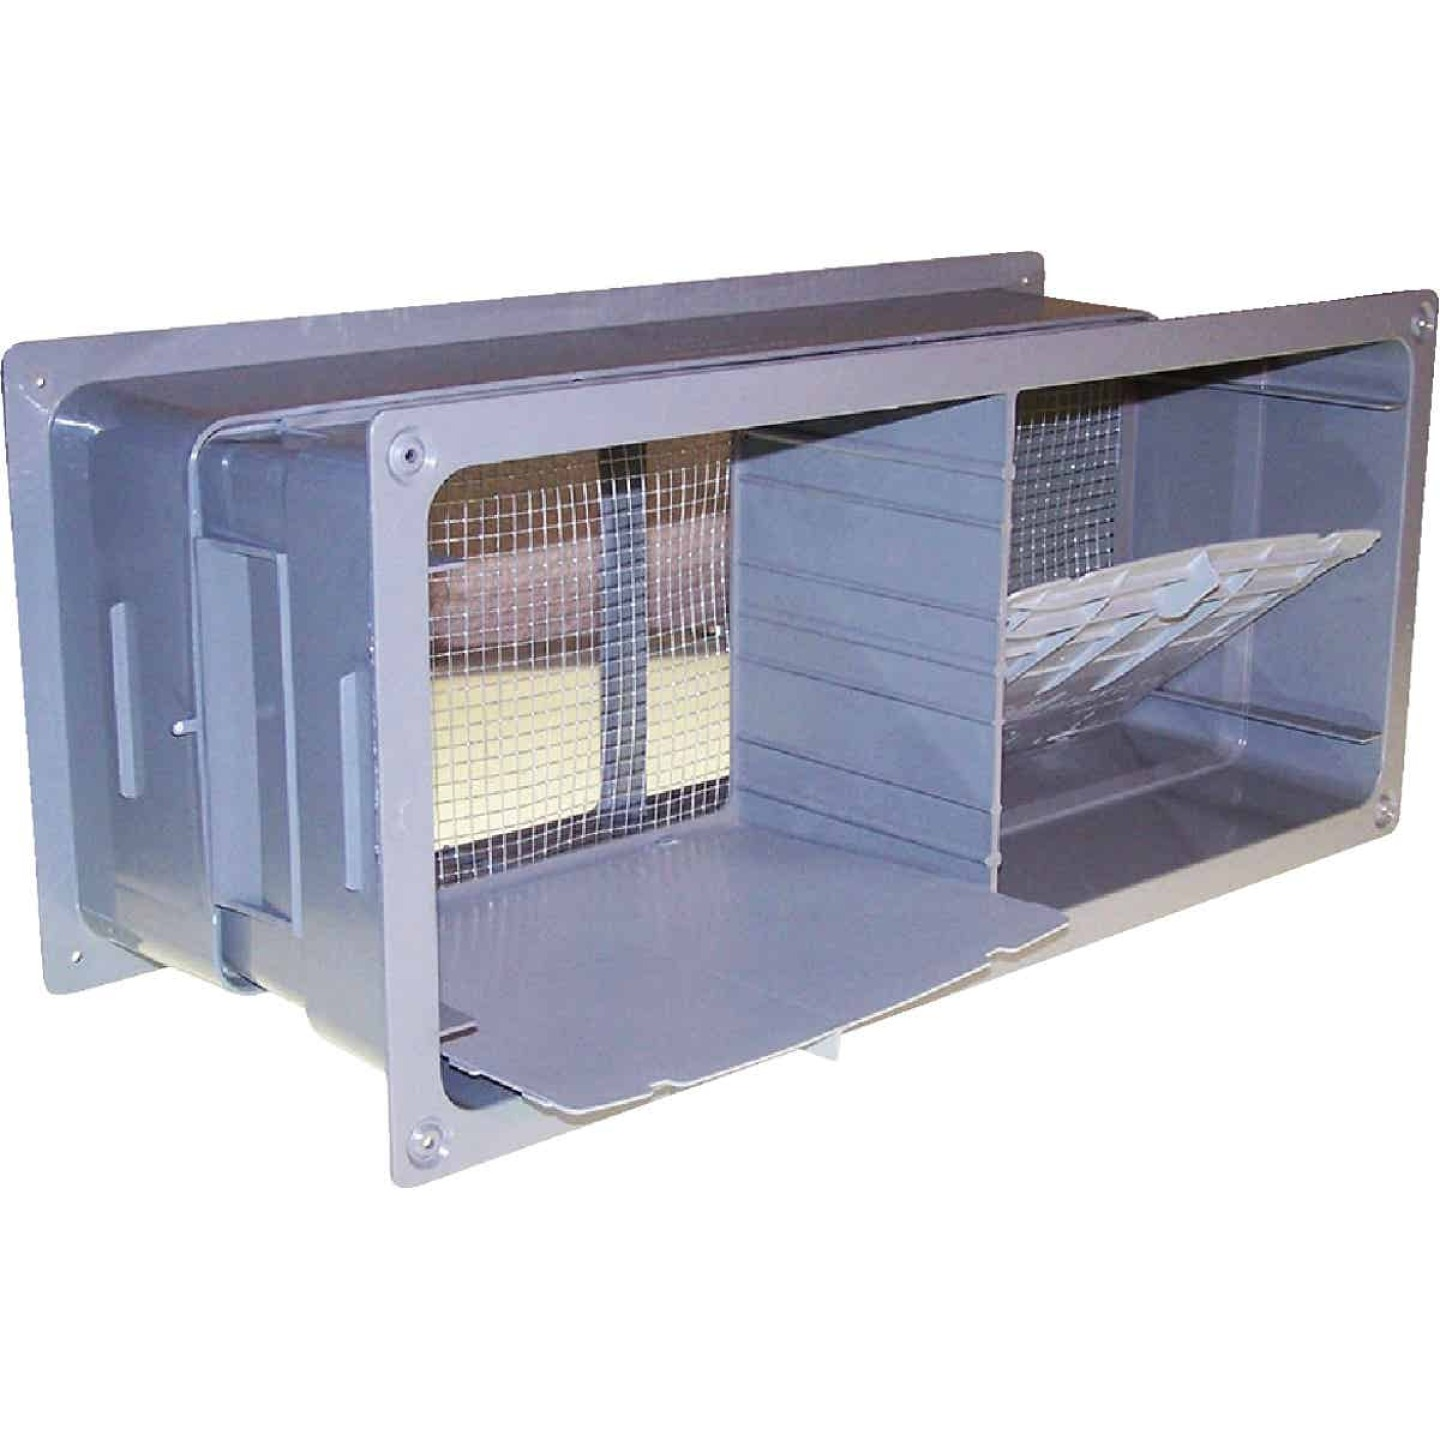 NorWesco 7-1/4 In. x 18-1/2 In. Adjustable Foundation Vent with Damper Image 1